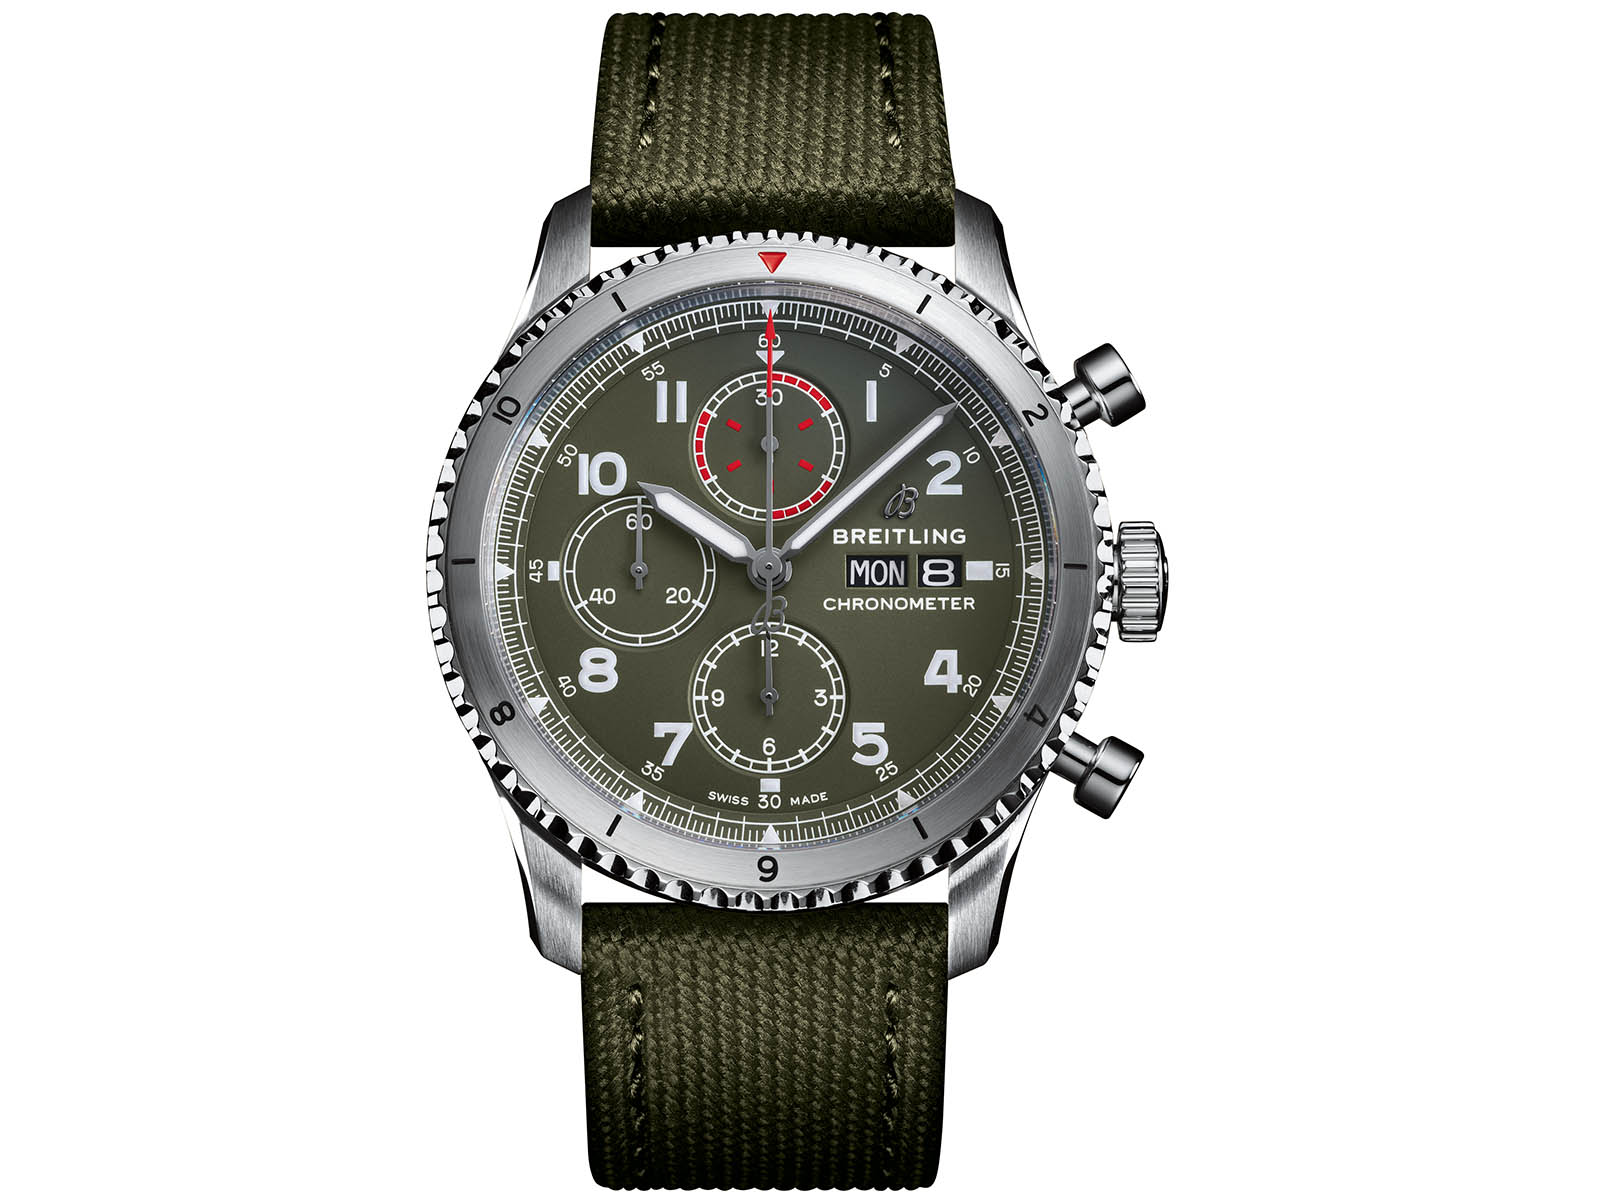 a13316-breitling-aviator-8-chronograph-43-curtiss-warhawk-3.jpg